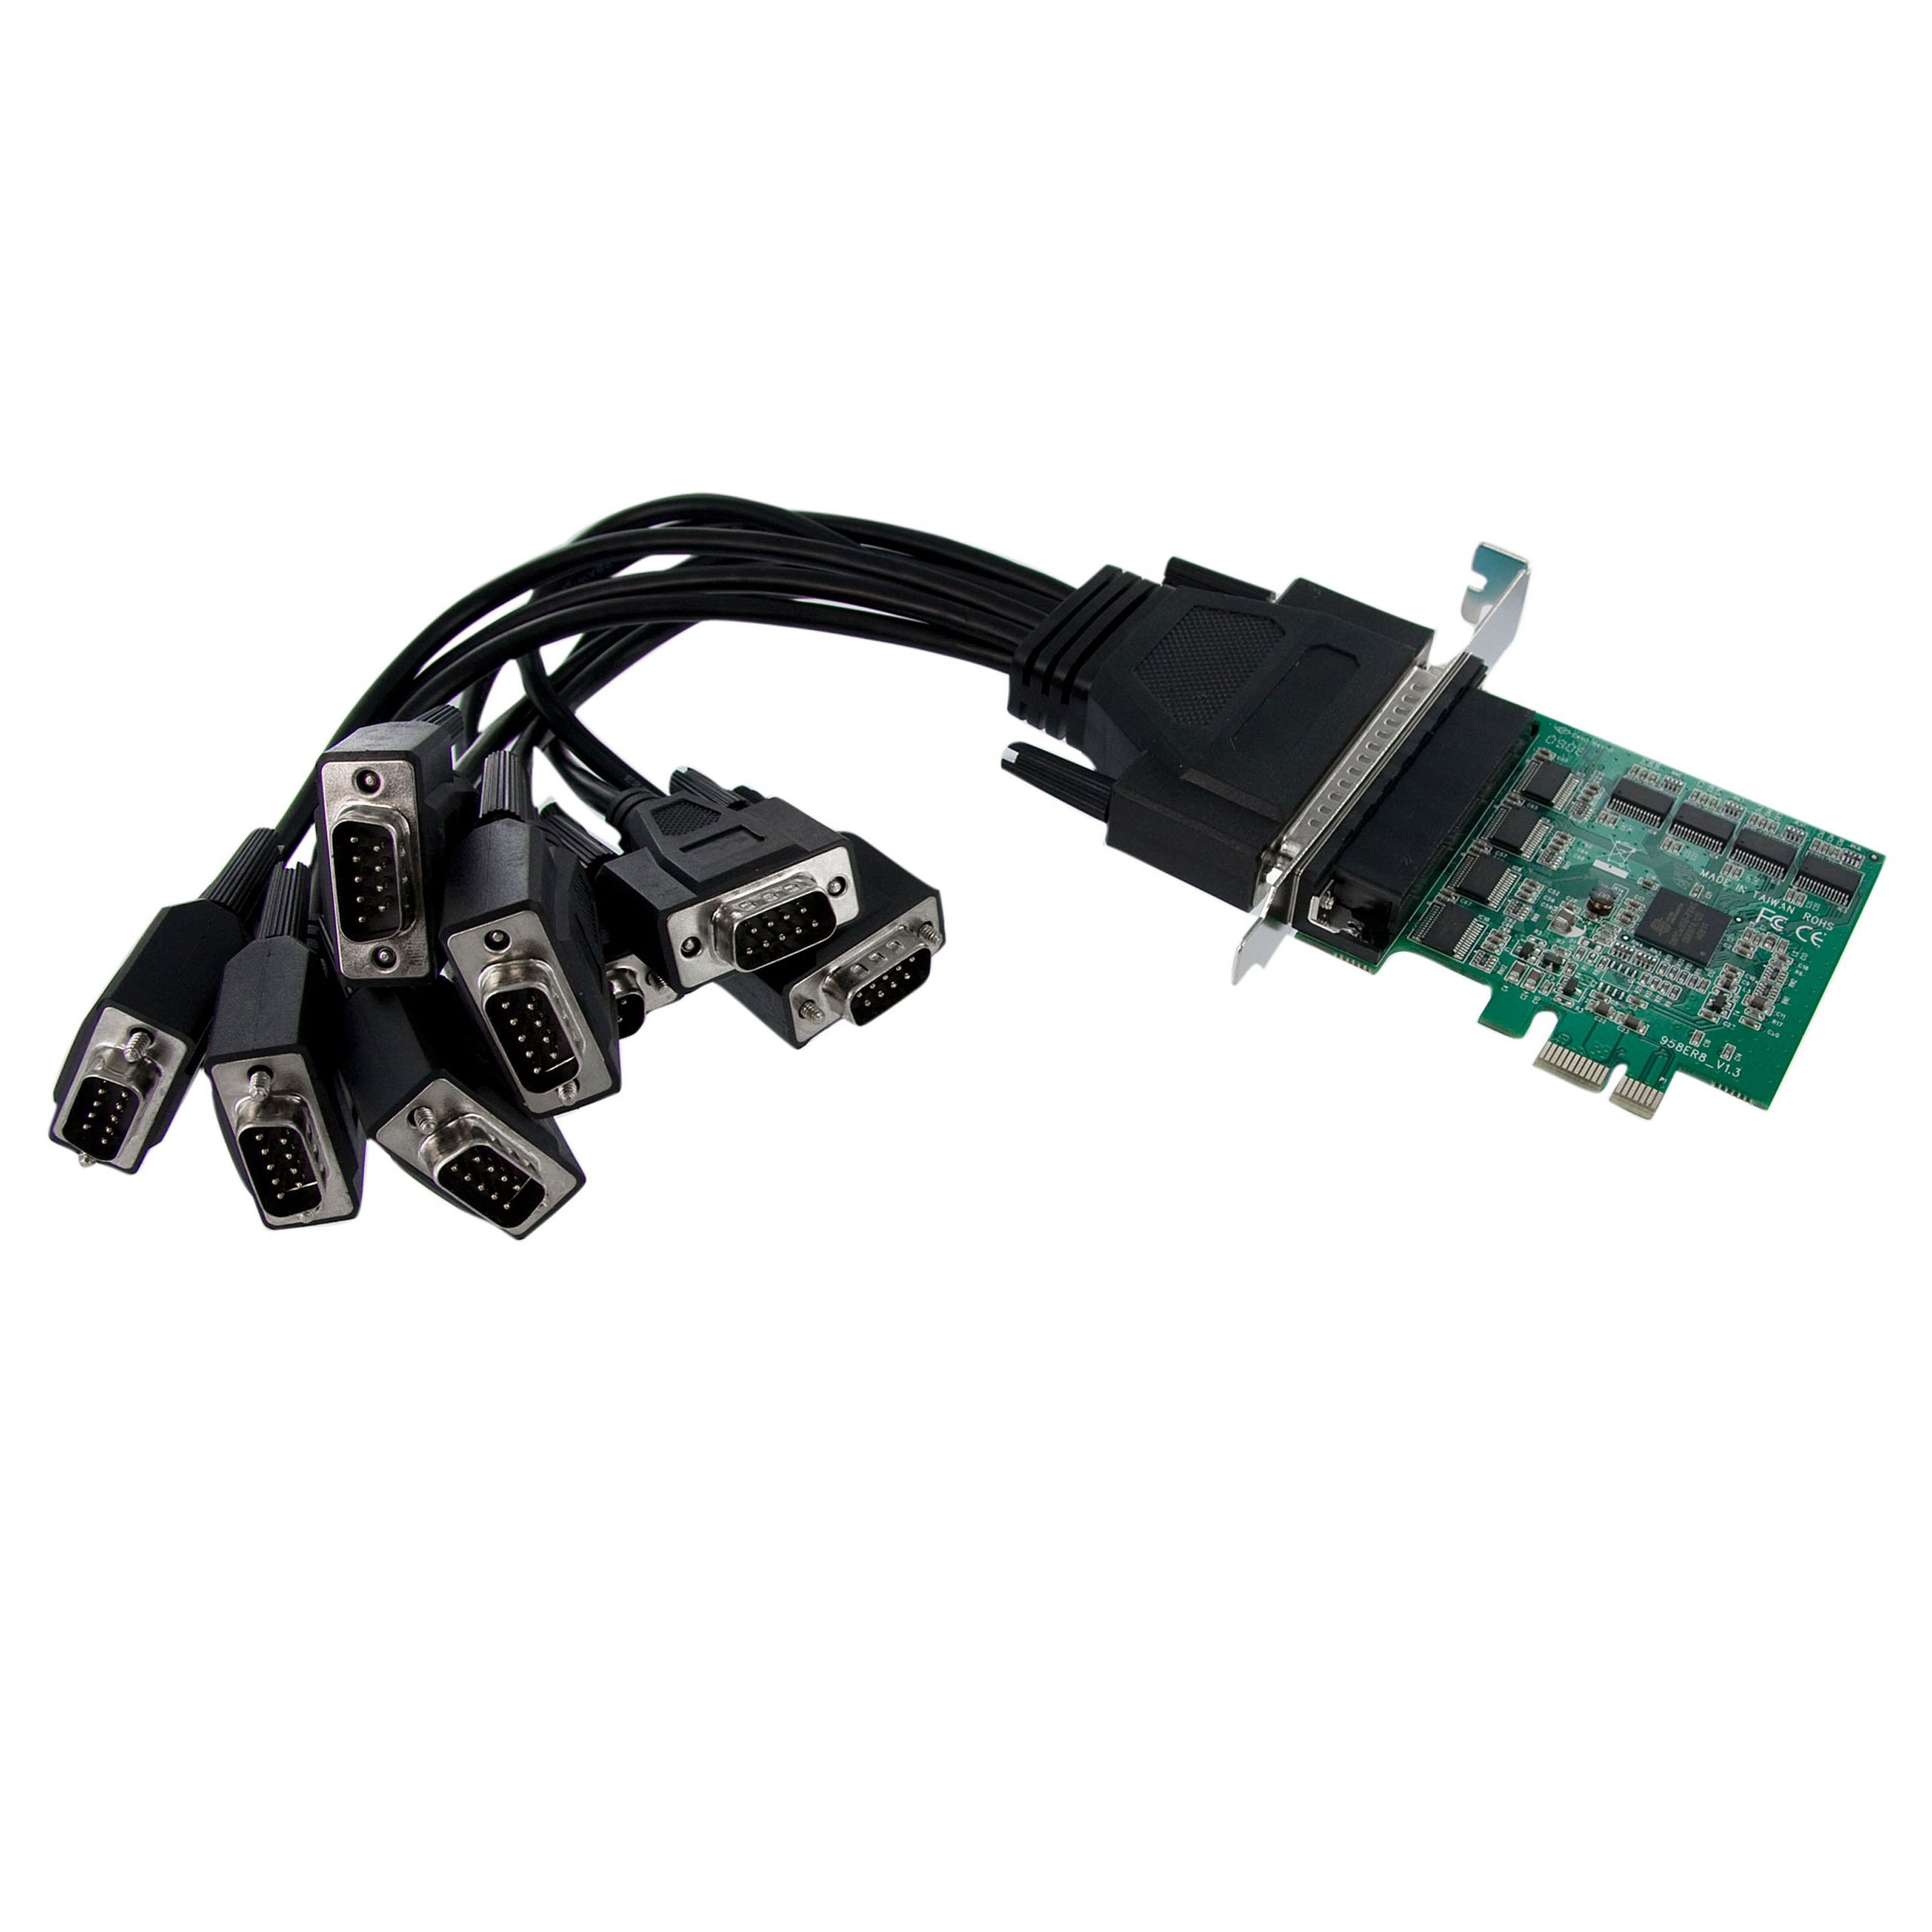 StarTech.com PEX8S952 8 Port Native PCI Express RS232 Serial Adapter Card with 16950 UART